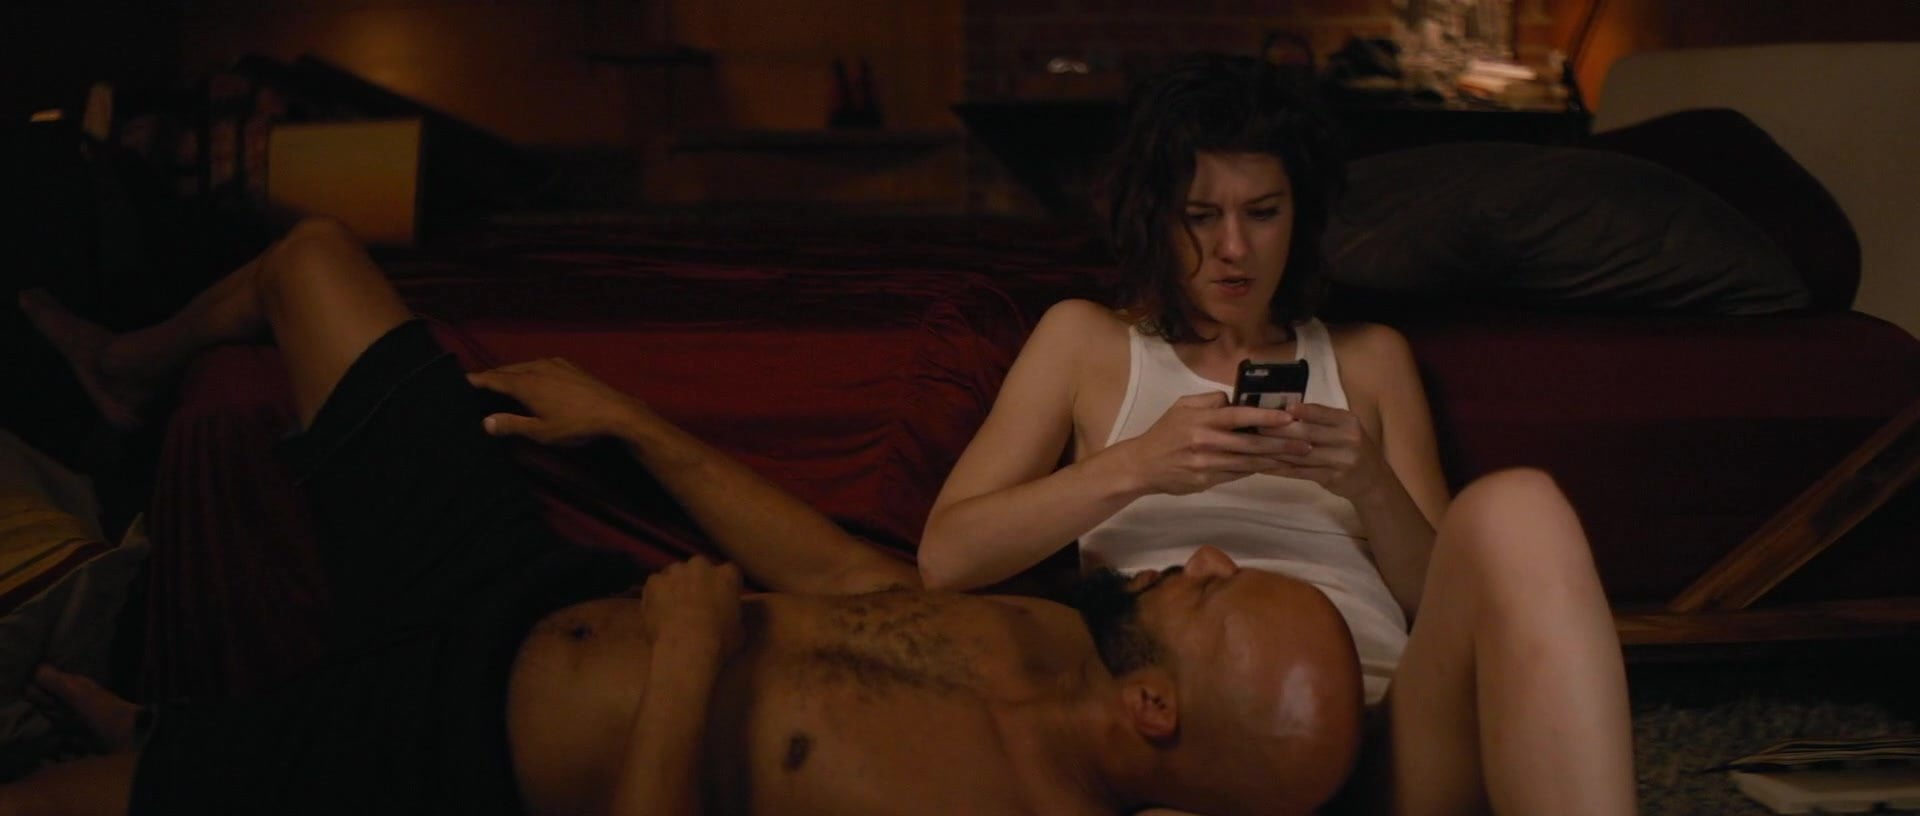 mary elizabeth winstead porn picture